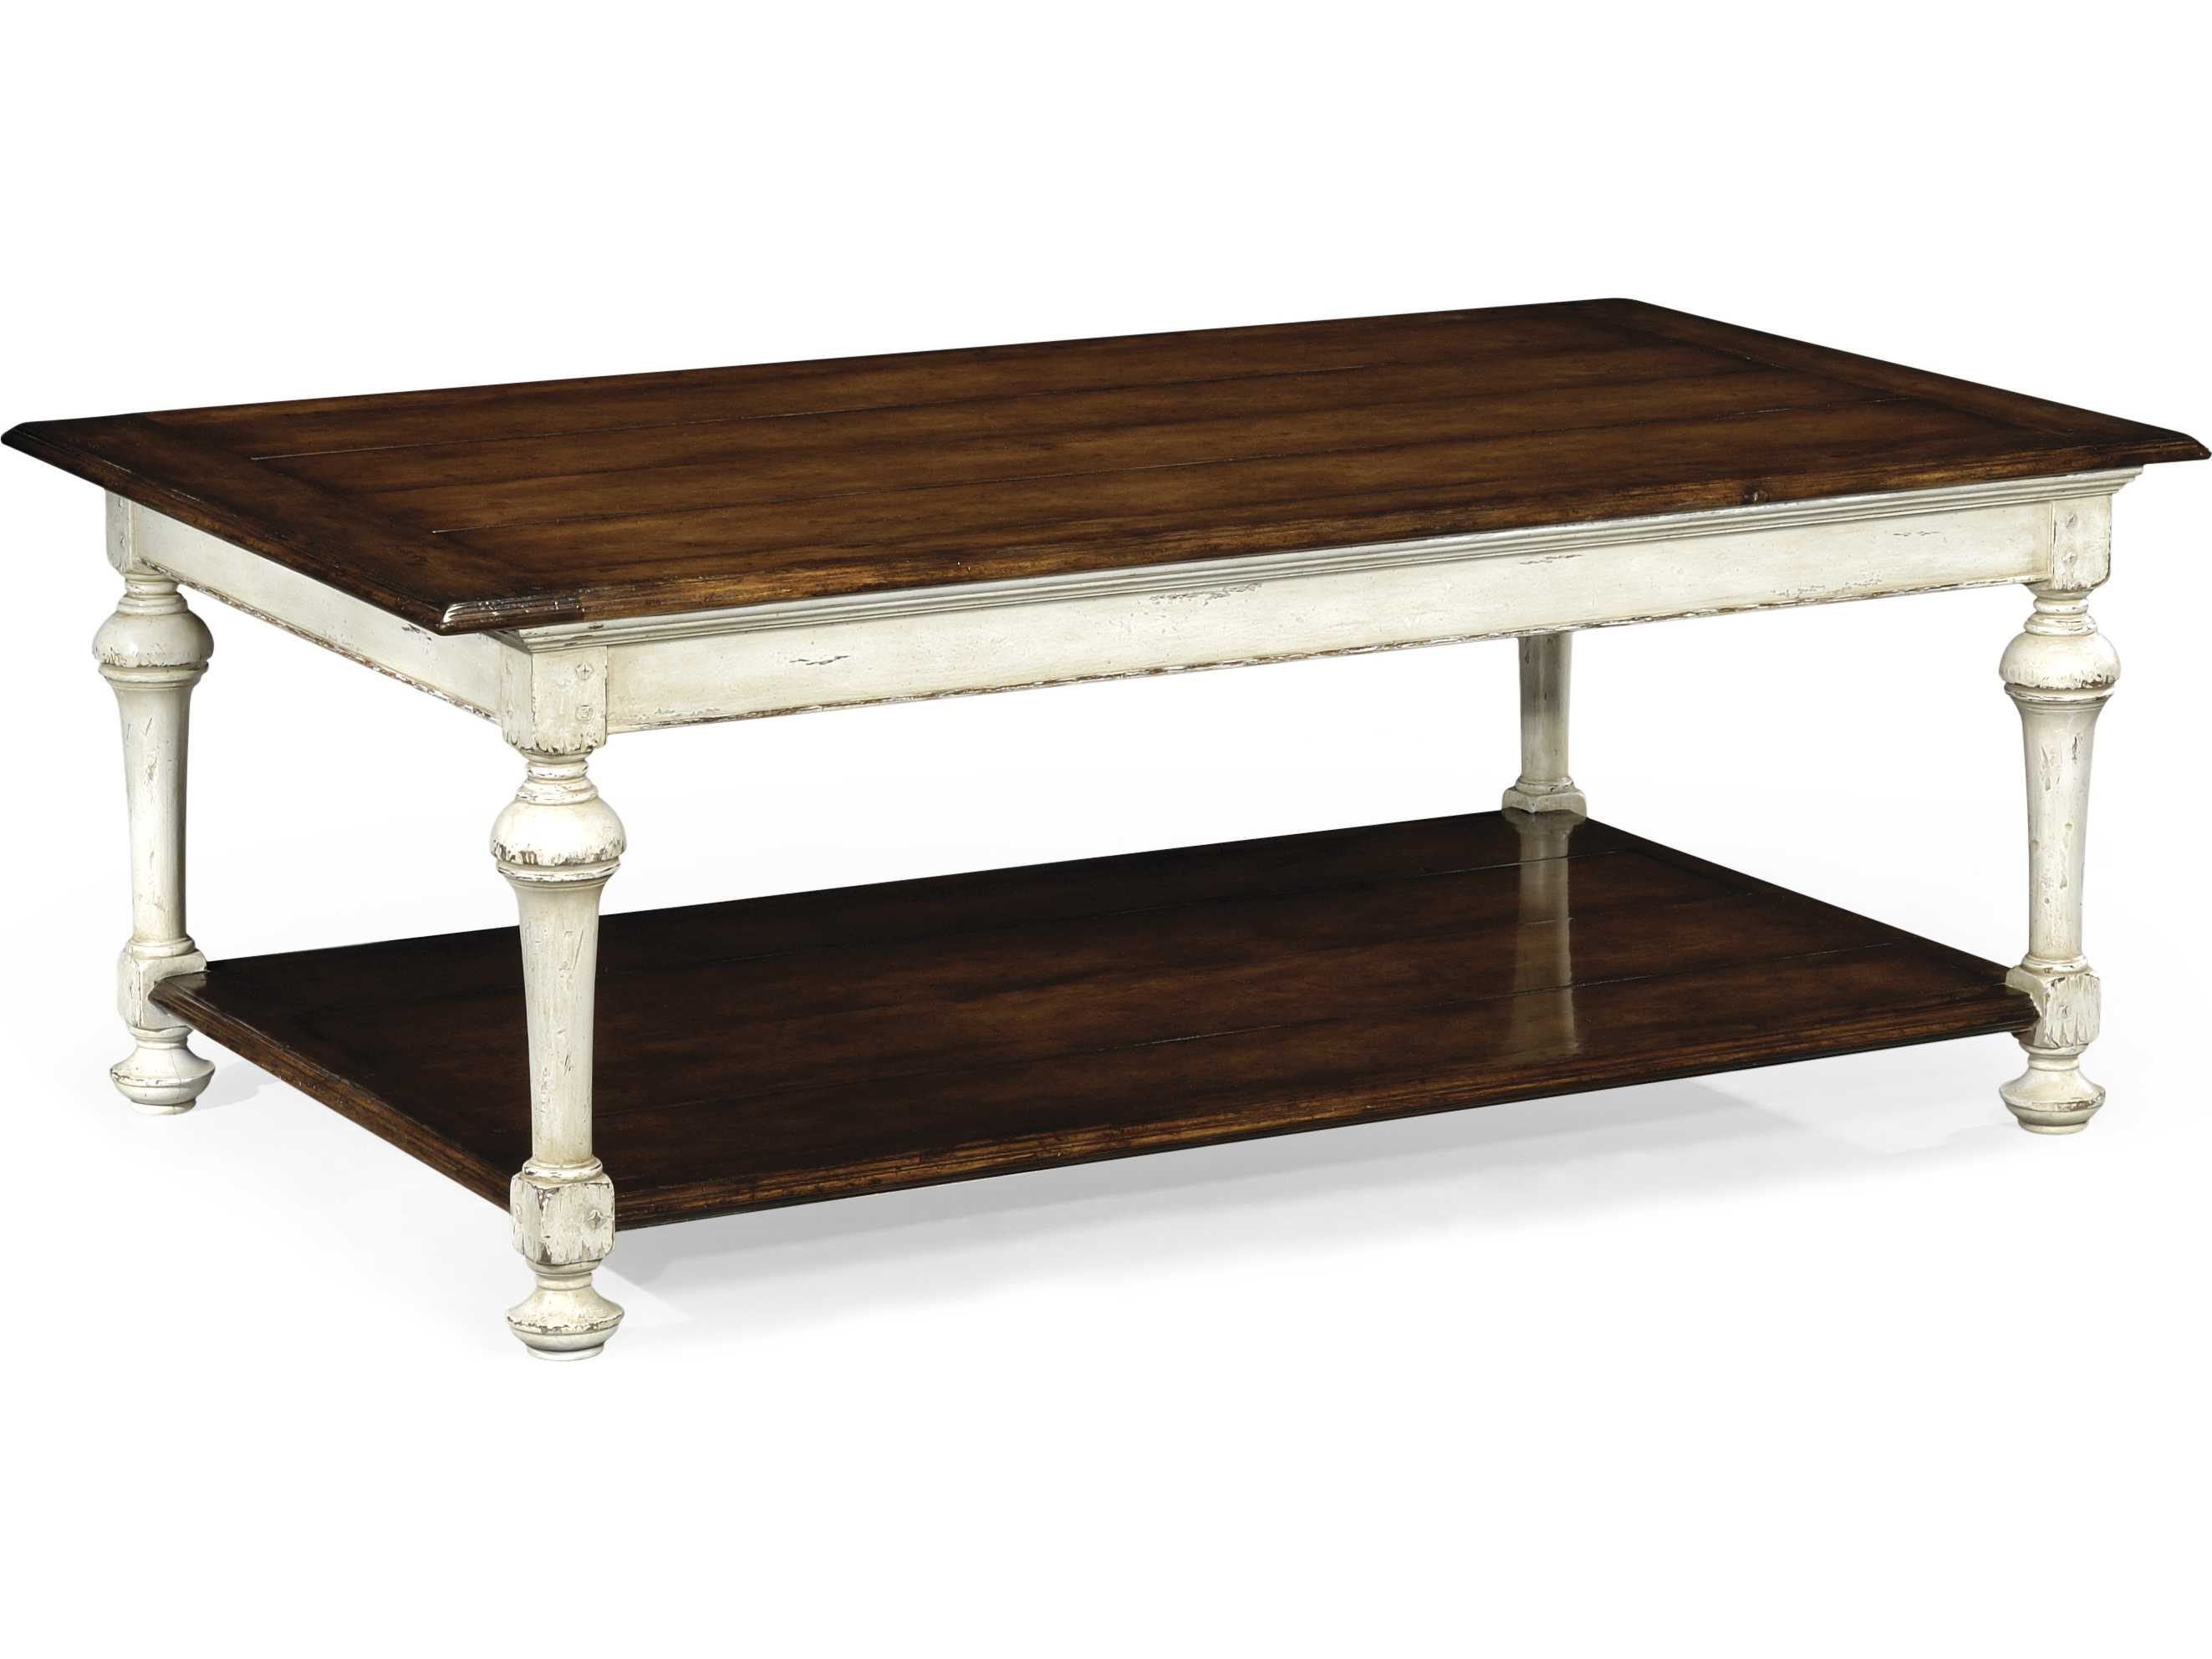 Jonathan Charles Country Farmhouse Painted Off White 54 X 32 Rectangular Coffee Table 493725